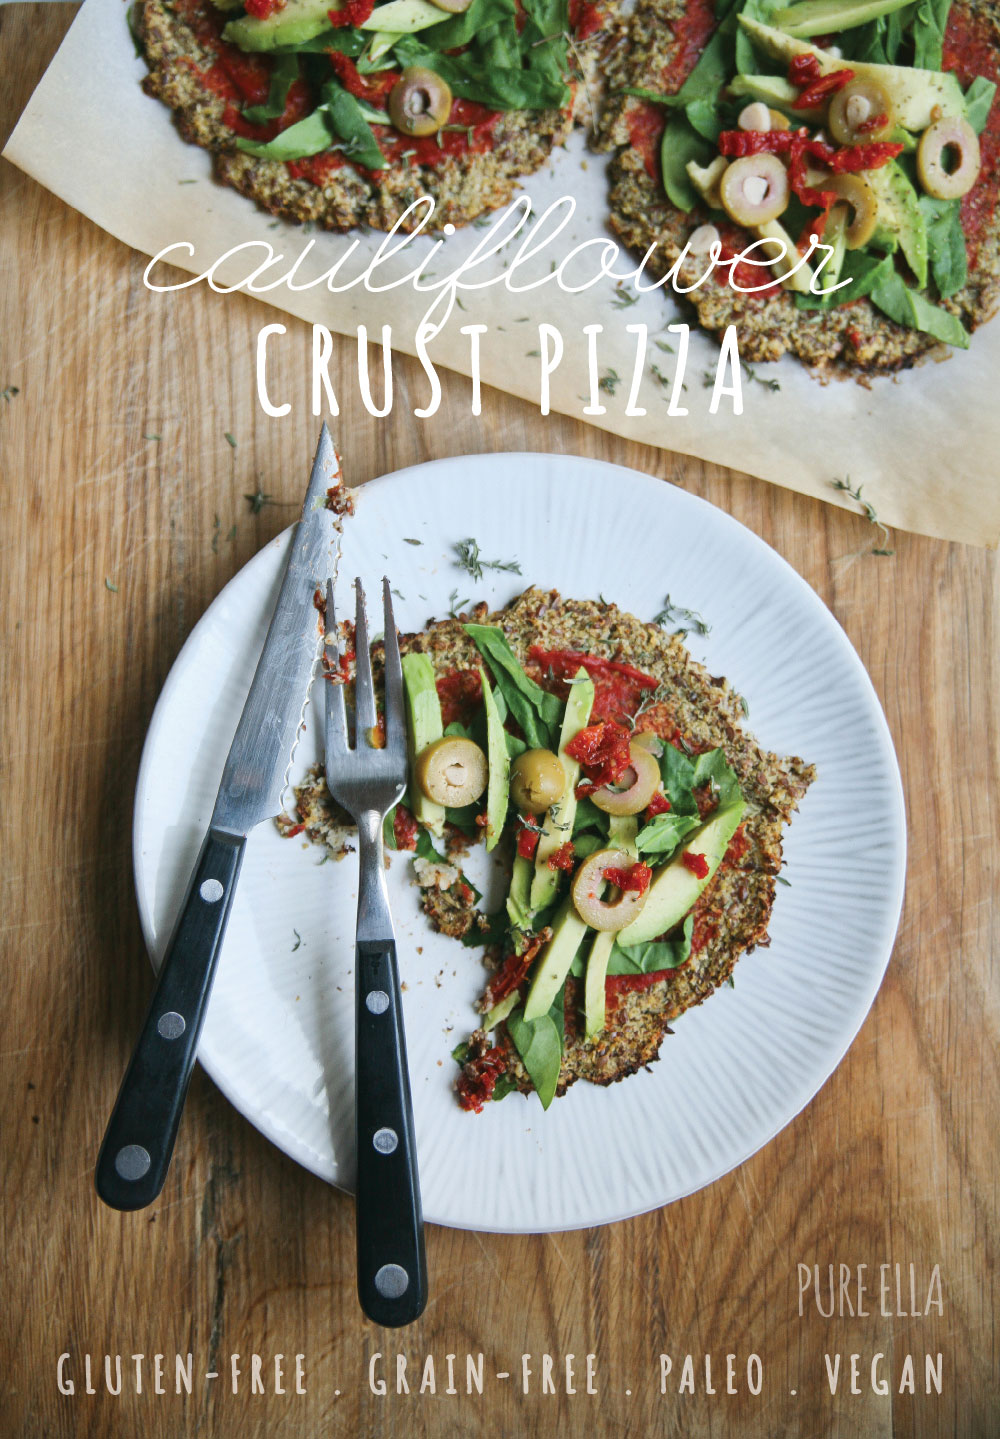 Pure-Ella-gluten-free-paleo-vegan-cauliflower-crust-pizza